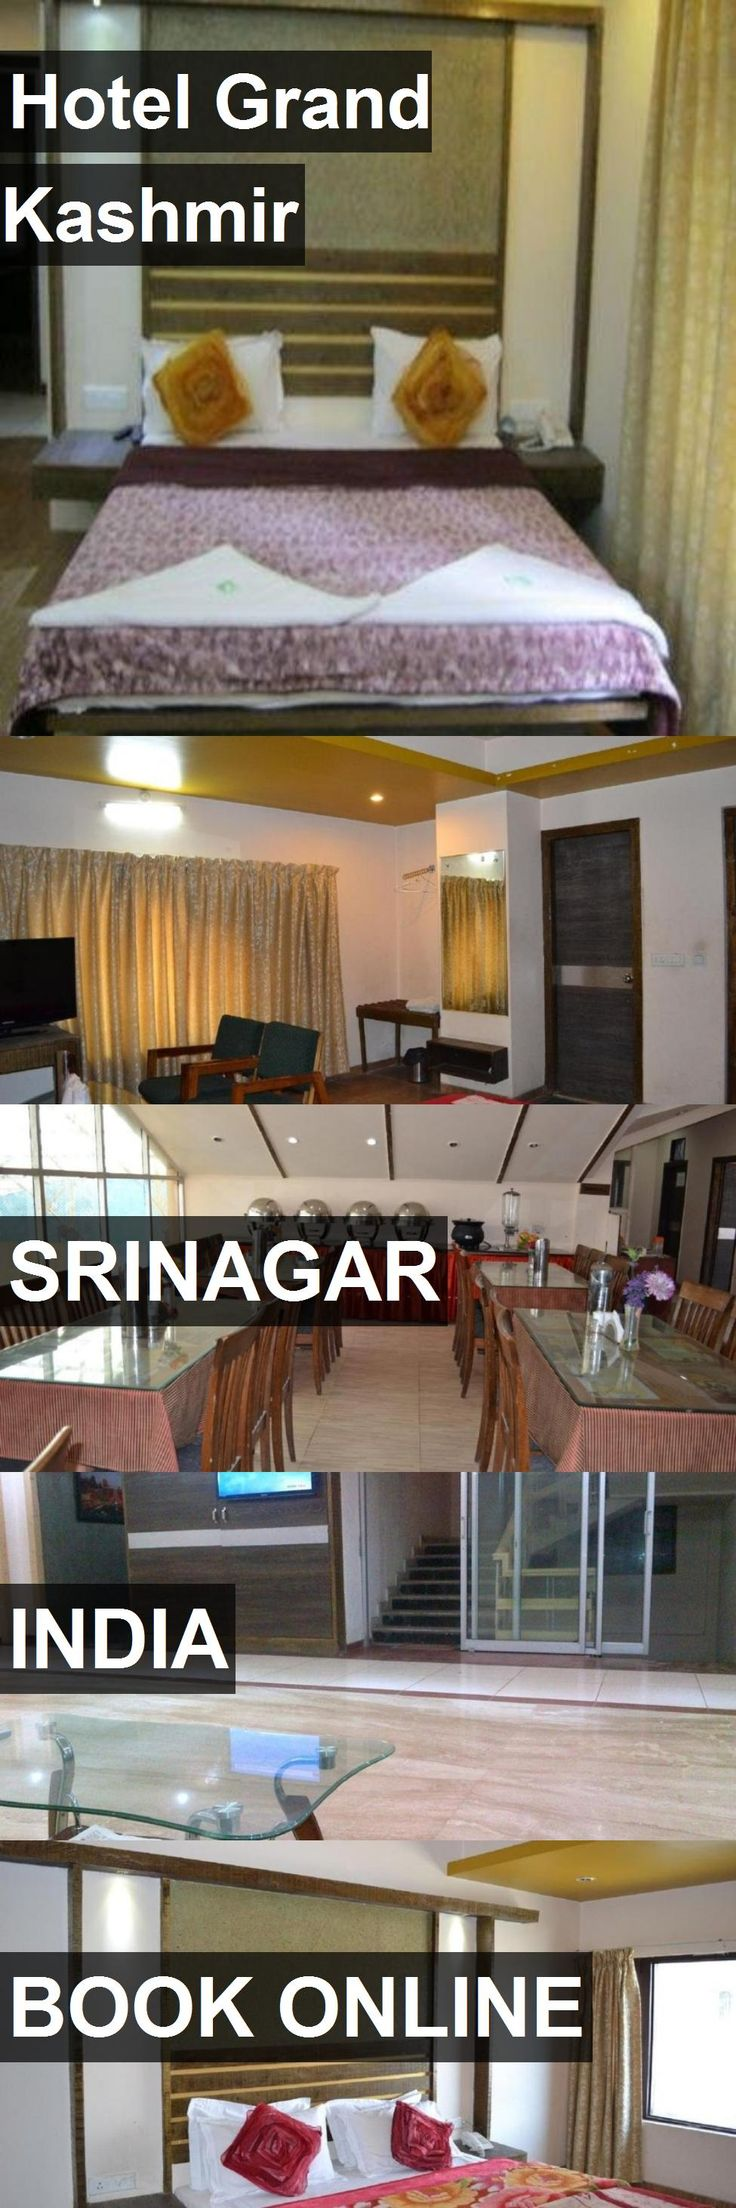 Hotel Hotel Grand Kashmir in Srinagar, India. For more information, photos, reviews and best prices please follow the link. #India #Srinagar #hotel #travel #vacation